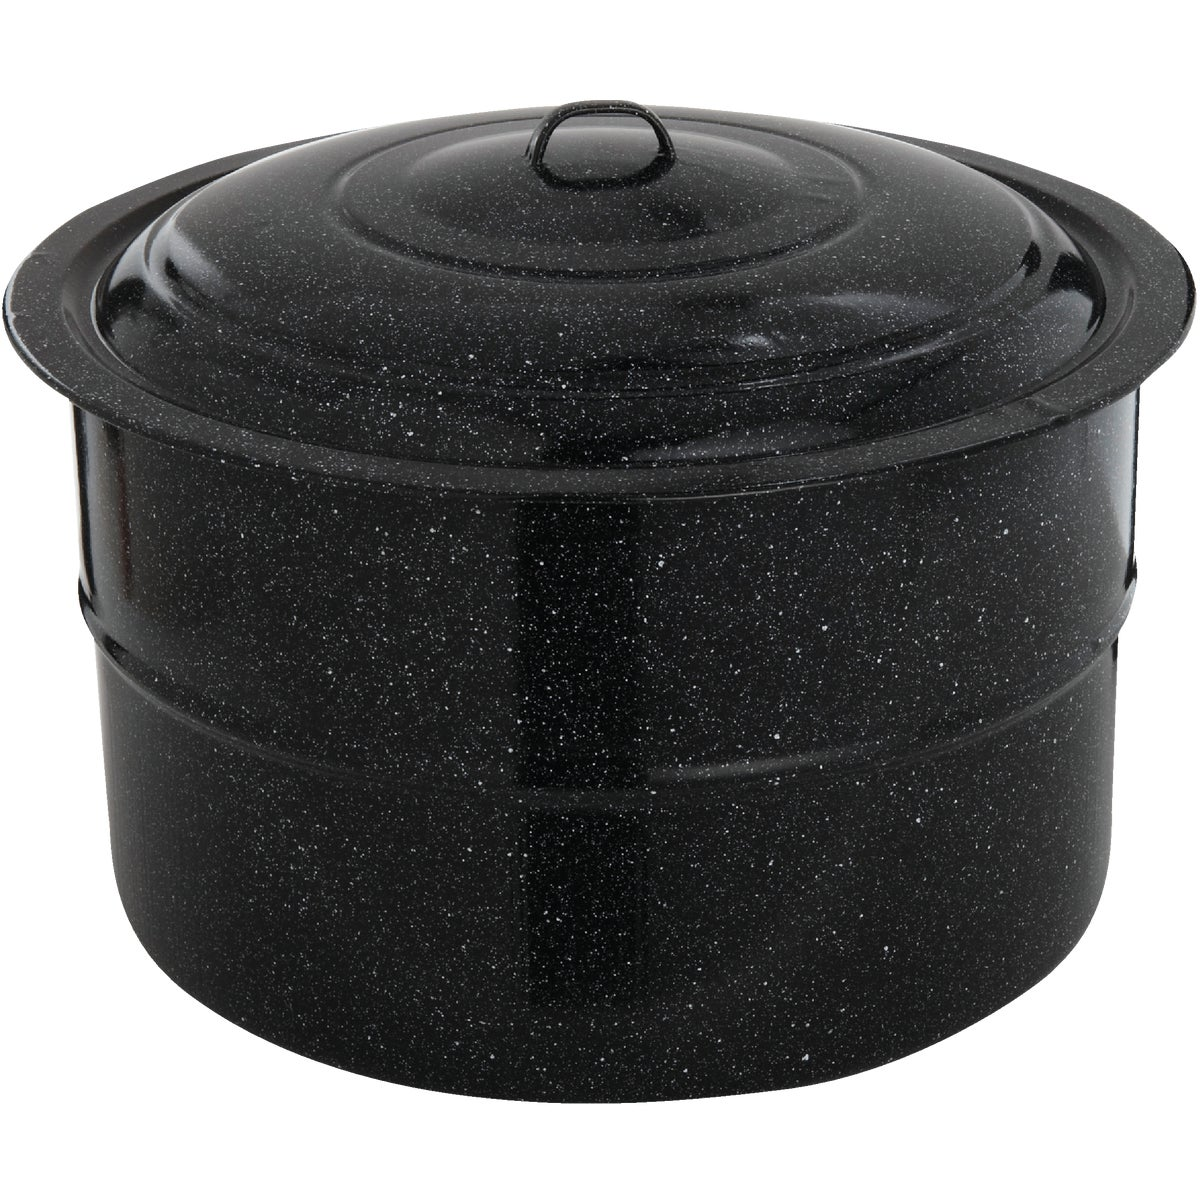 33QT CANNER - 0709-2 by Columbian Home Prod